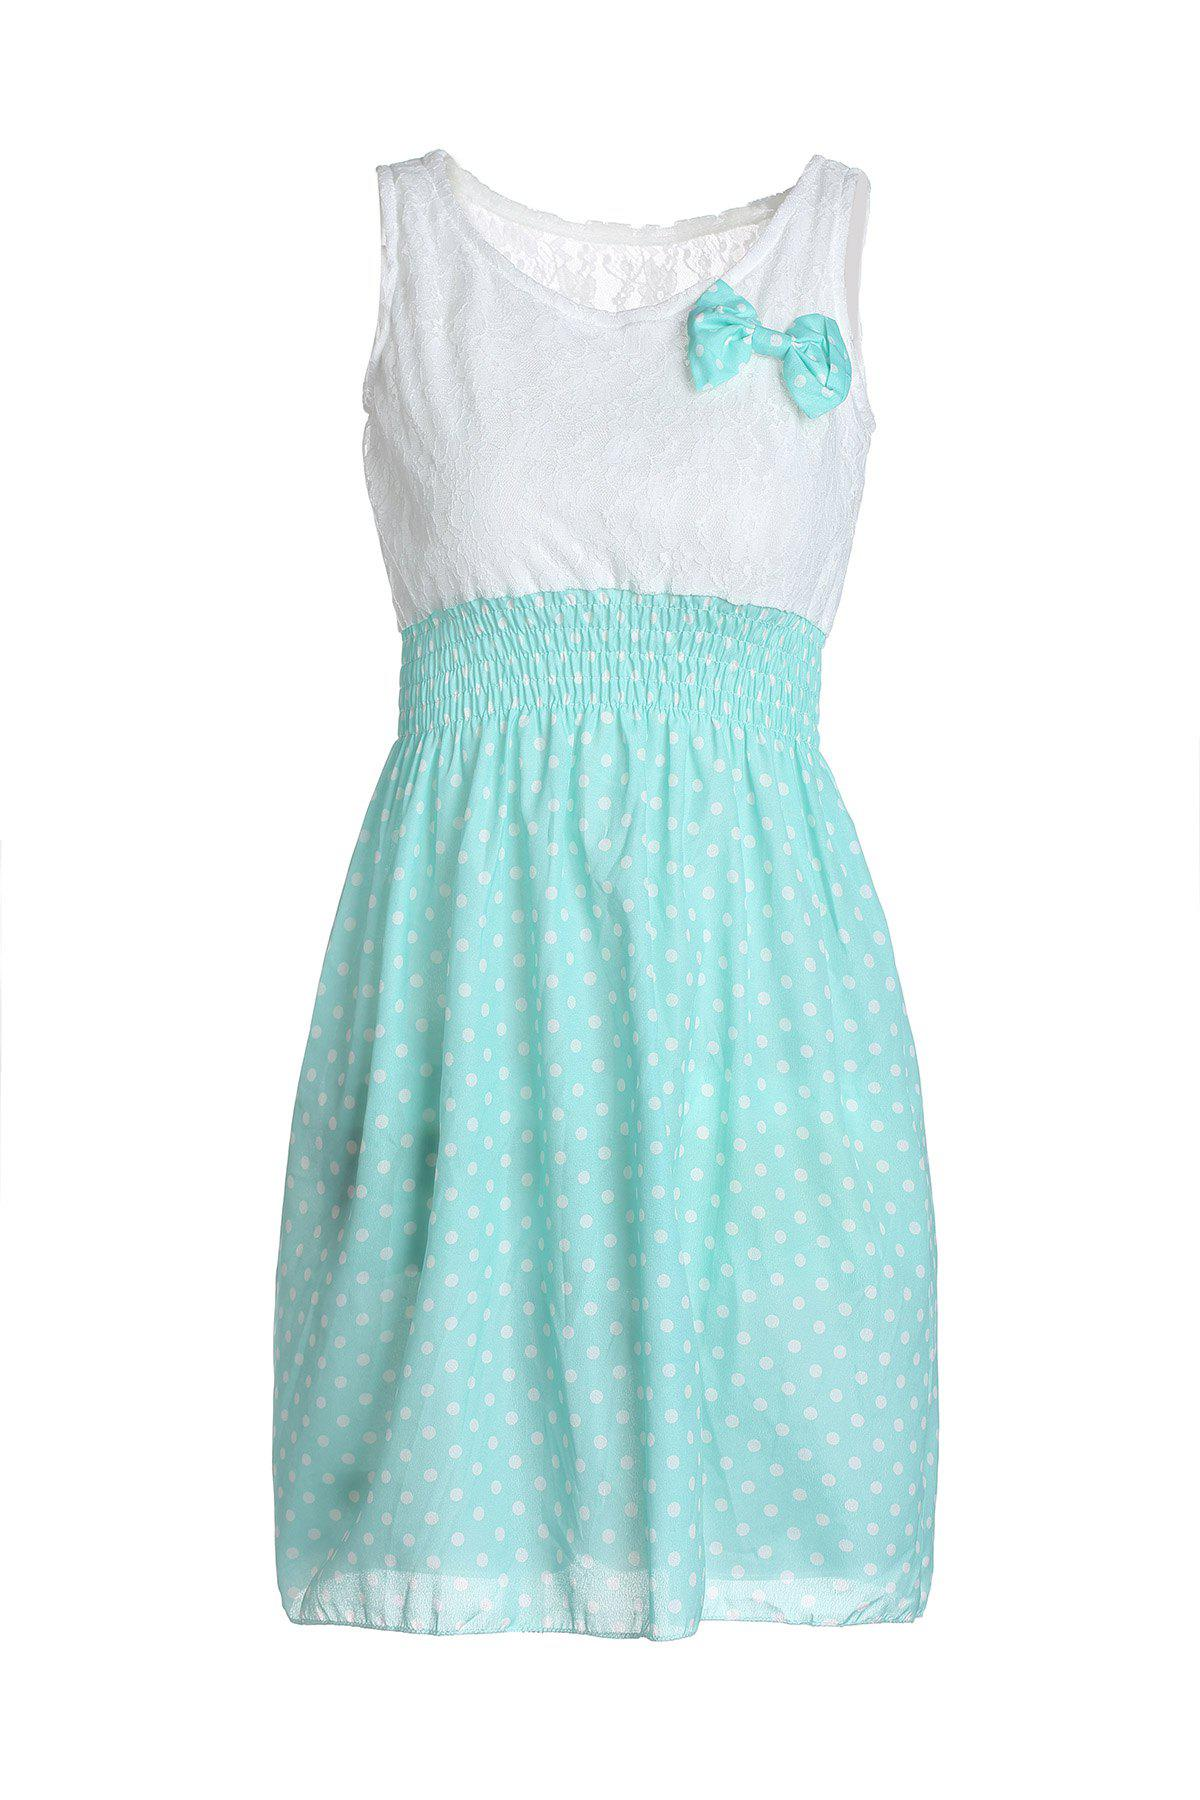 New Korean Fashion Style Polka Dot Sweet Lovely Mini Dress Orange/Green Lace Top - LIGHT GREEN ONE SIZE